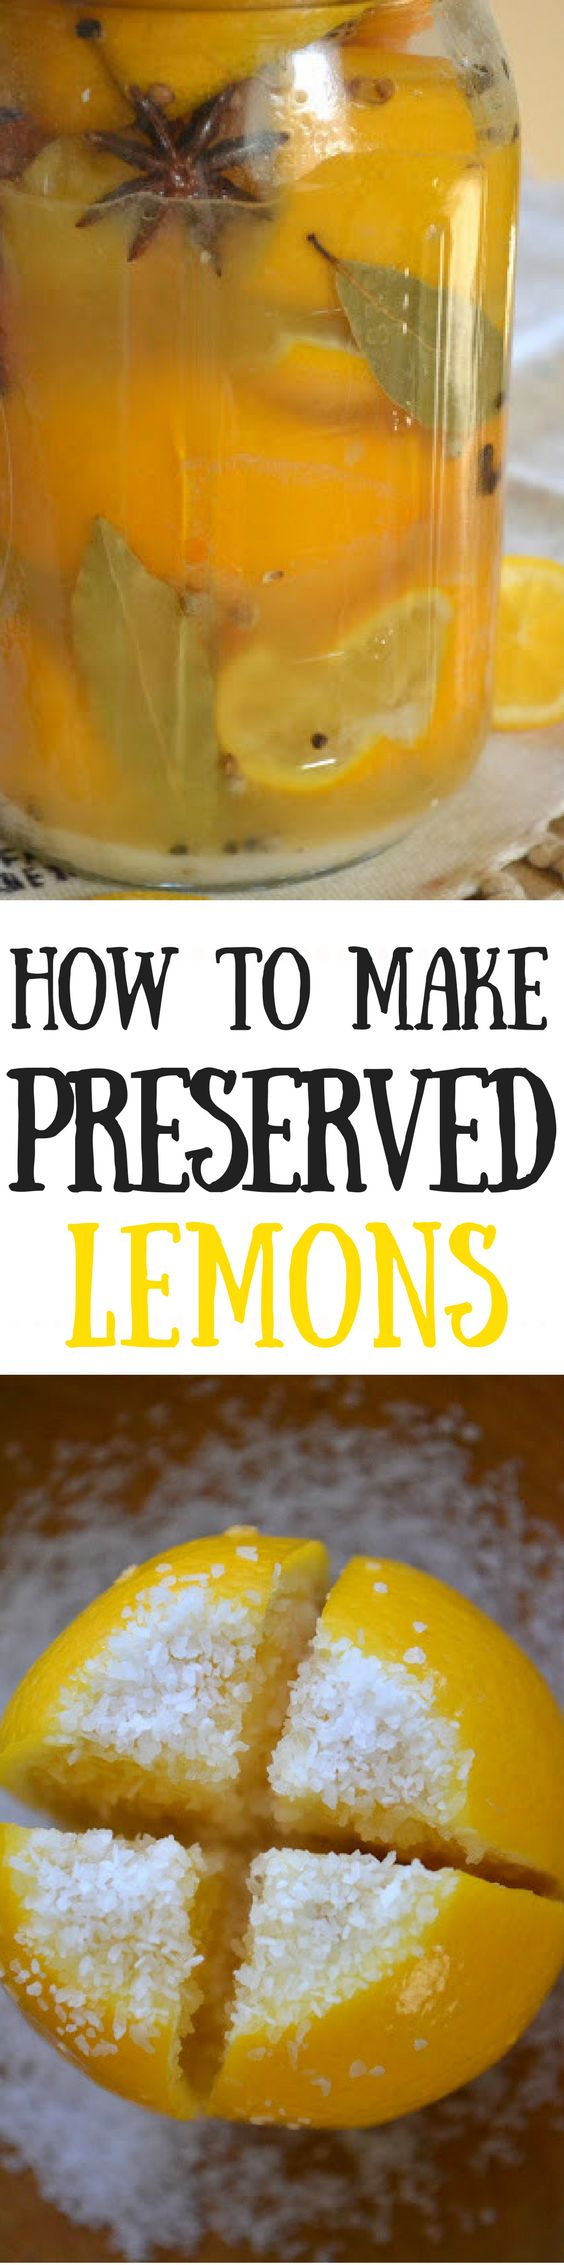 Preserved Lemons is a unique condiment that brightens up lots of Middle Eastern recipes but can be hard to find in stores ~ I'll show you how to make preserved lemons right at home, it's easy!